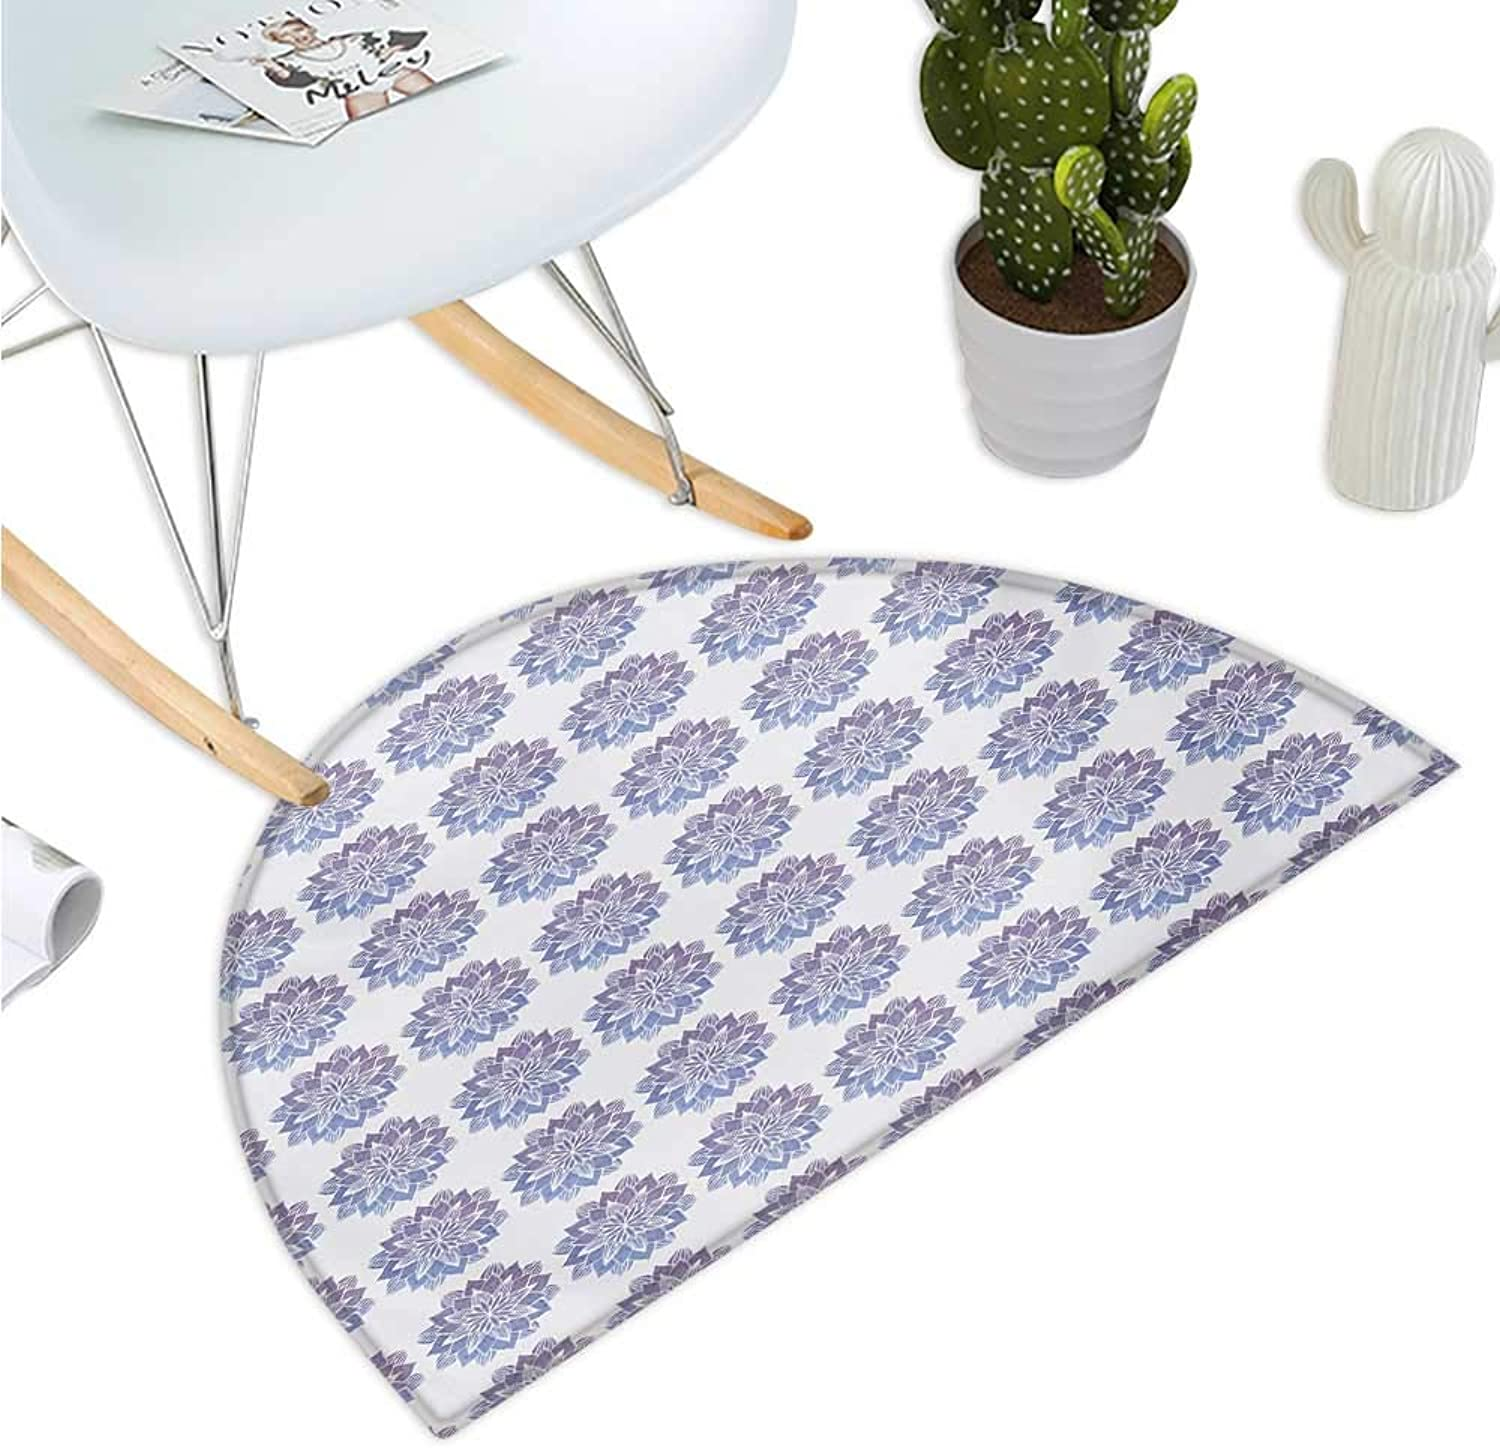 Yoga Semicircular Cushion Hand Drawn Style Watercolor Flowers Frame Nature Inspired Hippie Design Entry Door Mat H 39.3  xD 59  Mauve Pale bluee and White